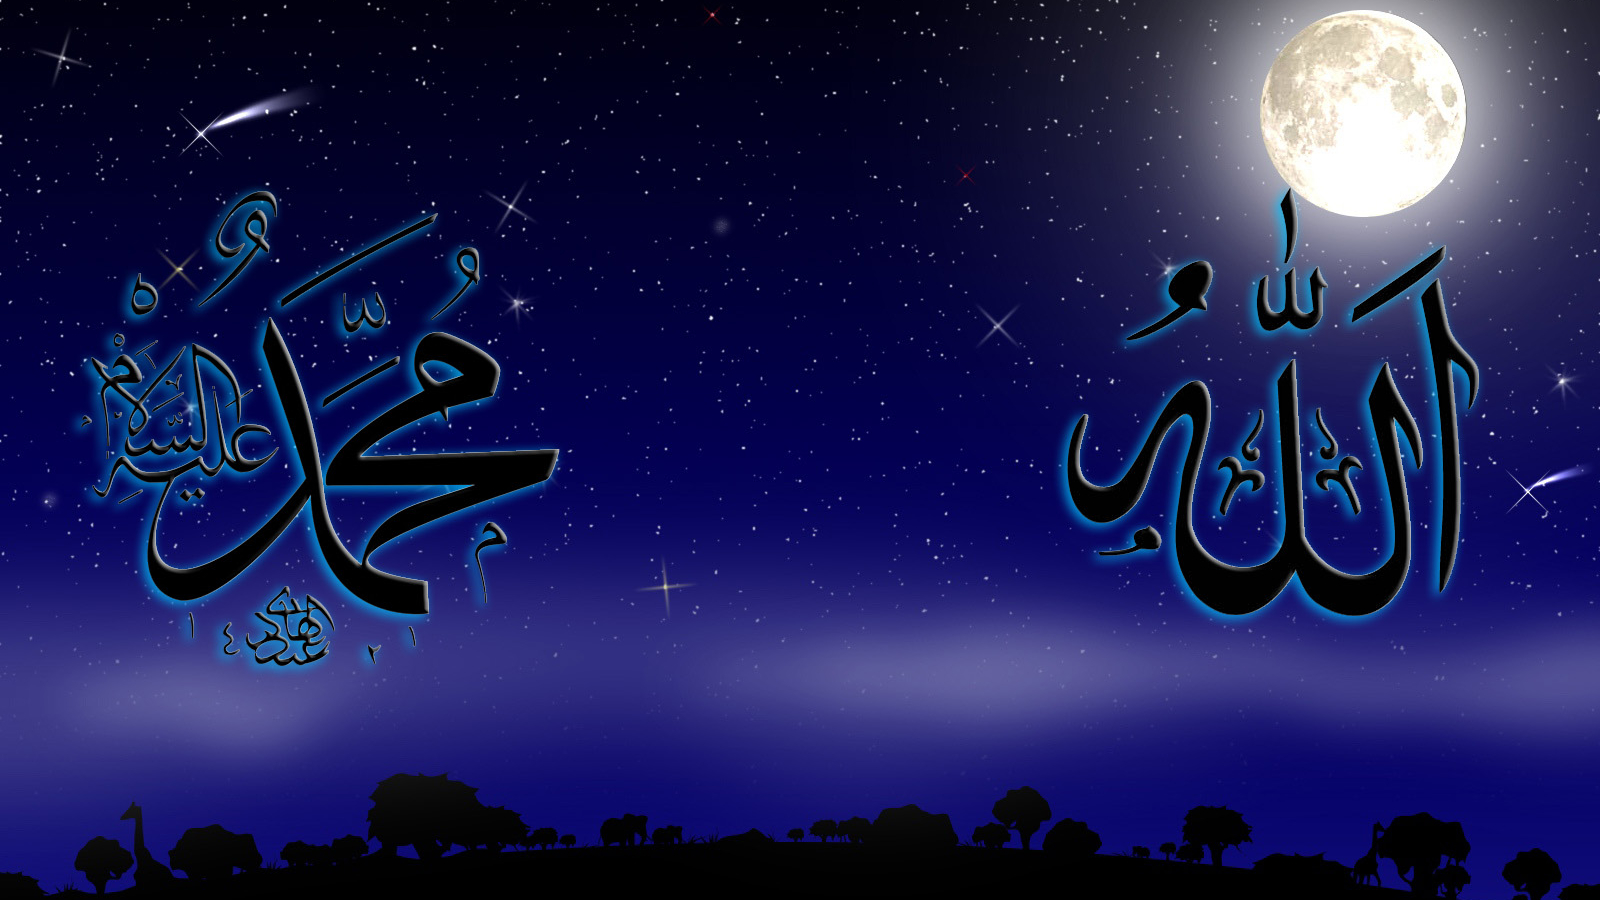 Free Download Name Of Allah And Muhammad Saw With Moon Islamic Wallpaper Islamic 1600x1200 For Your Desktop Mobile Tablet Explore 45 Allah And Muhammad Hd Wallpaper Allah Beautiful Wallpapers